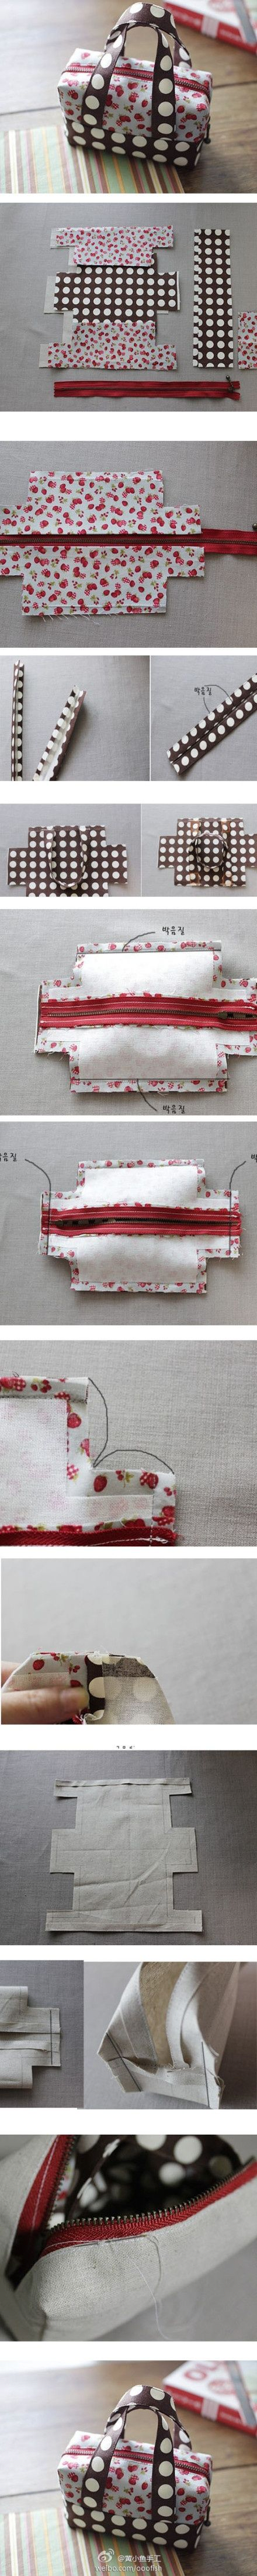 Cute DIY Bag. I loved this, I will do it once I get the zippers I ordered from Ebay. Lacey-zippers. :D